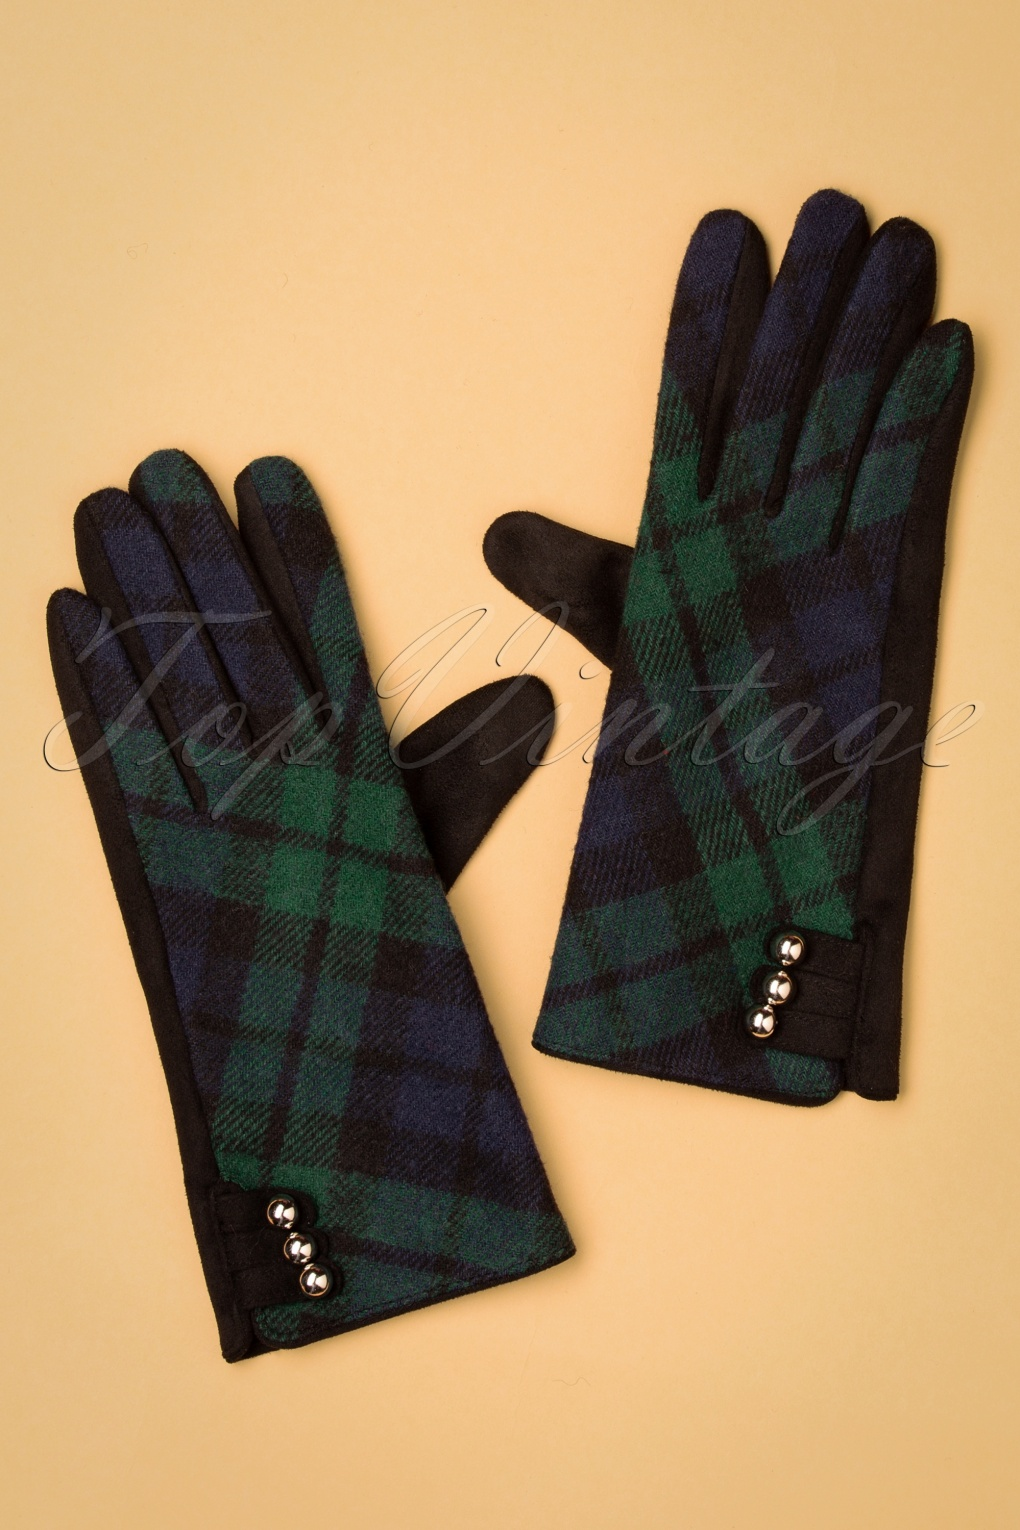 Vintage Style Gloves- Long, Wrist, Evening, Day, Leather, Lace 50s Holly Tartan Gloves in Navy £21.43 AT vintagedancer.com